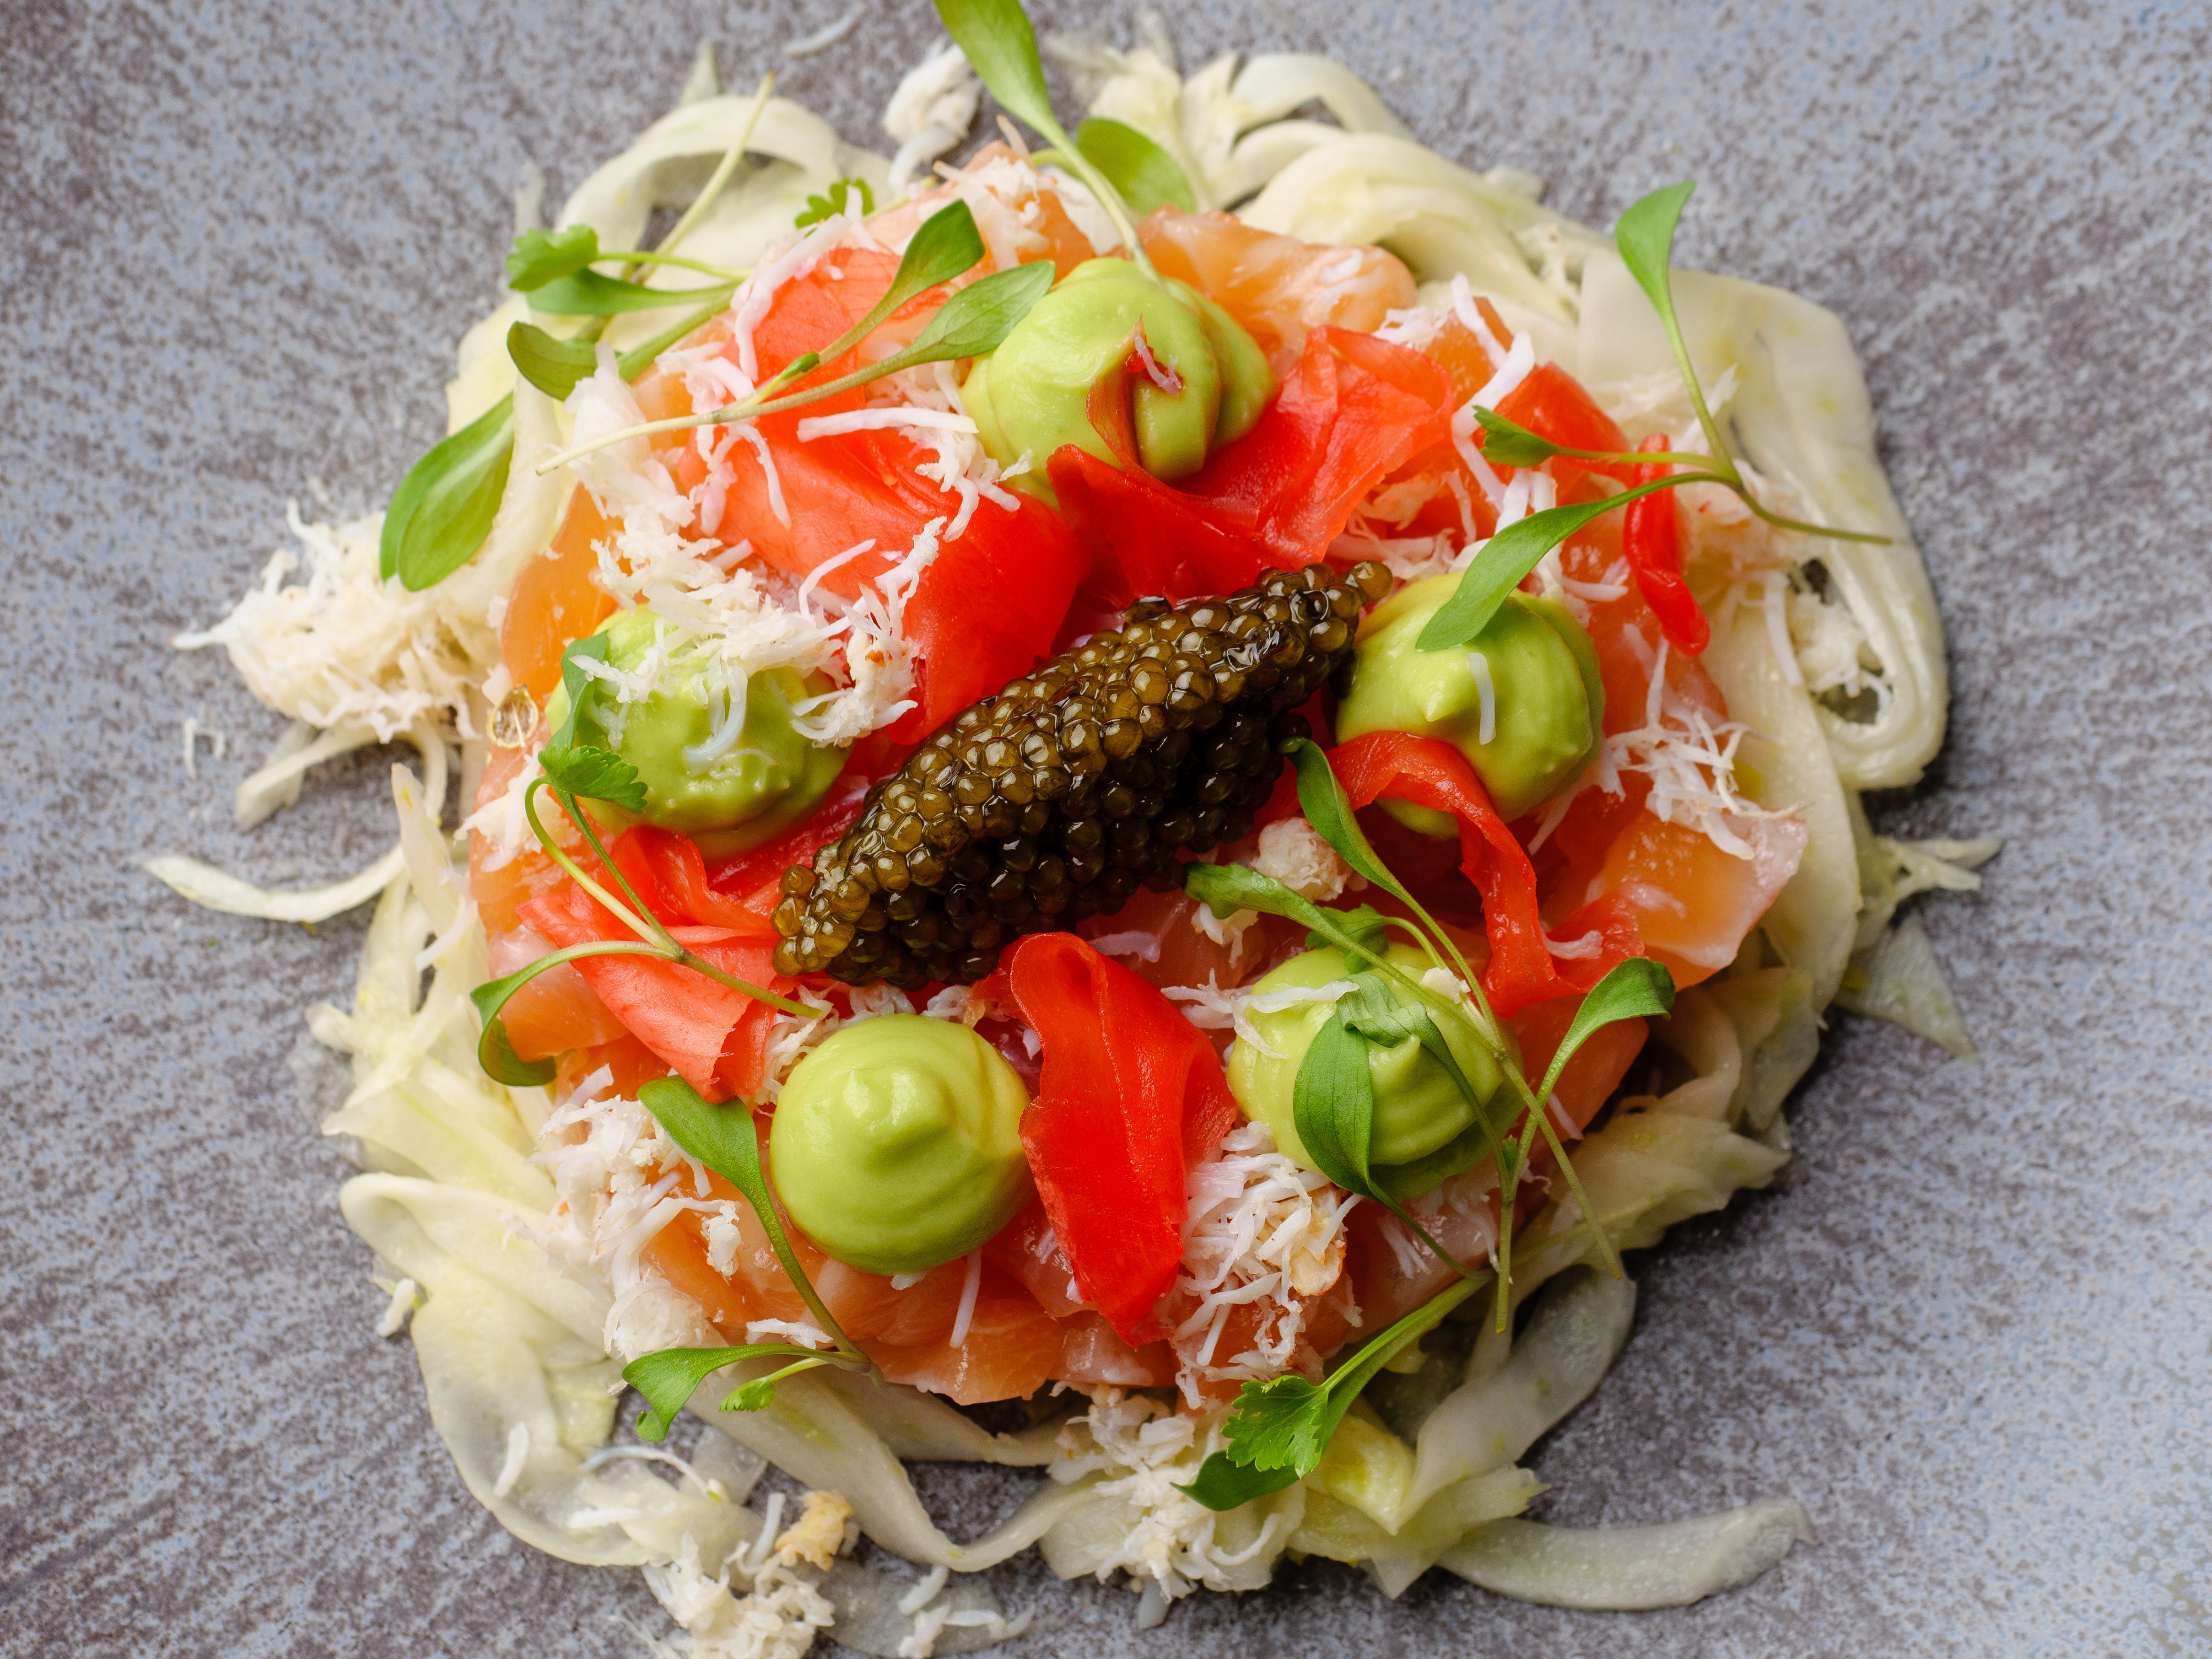 Cured Salmon With Crab, Fennel & Avocado Cream